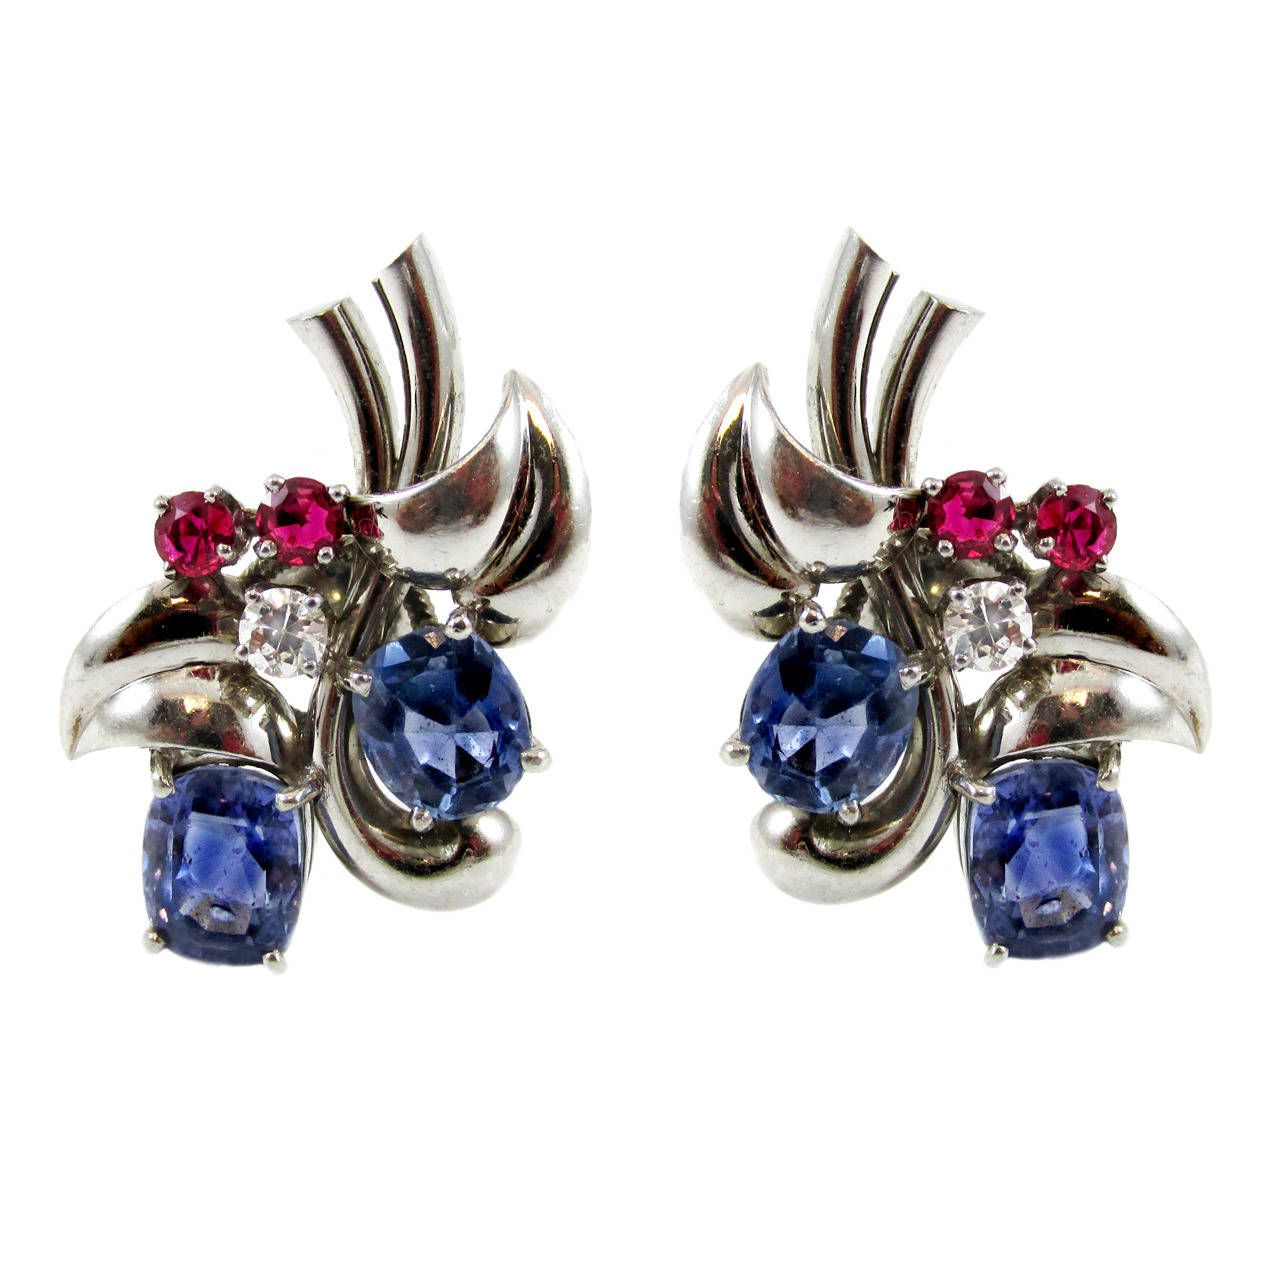 Raymond Yard Retro Sapphire Ruby Diamond Platinum Earclips | From a unique collection of vintage more earrings at https://www.1stdibs.com/jewelry/earrings/more-earrings/